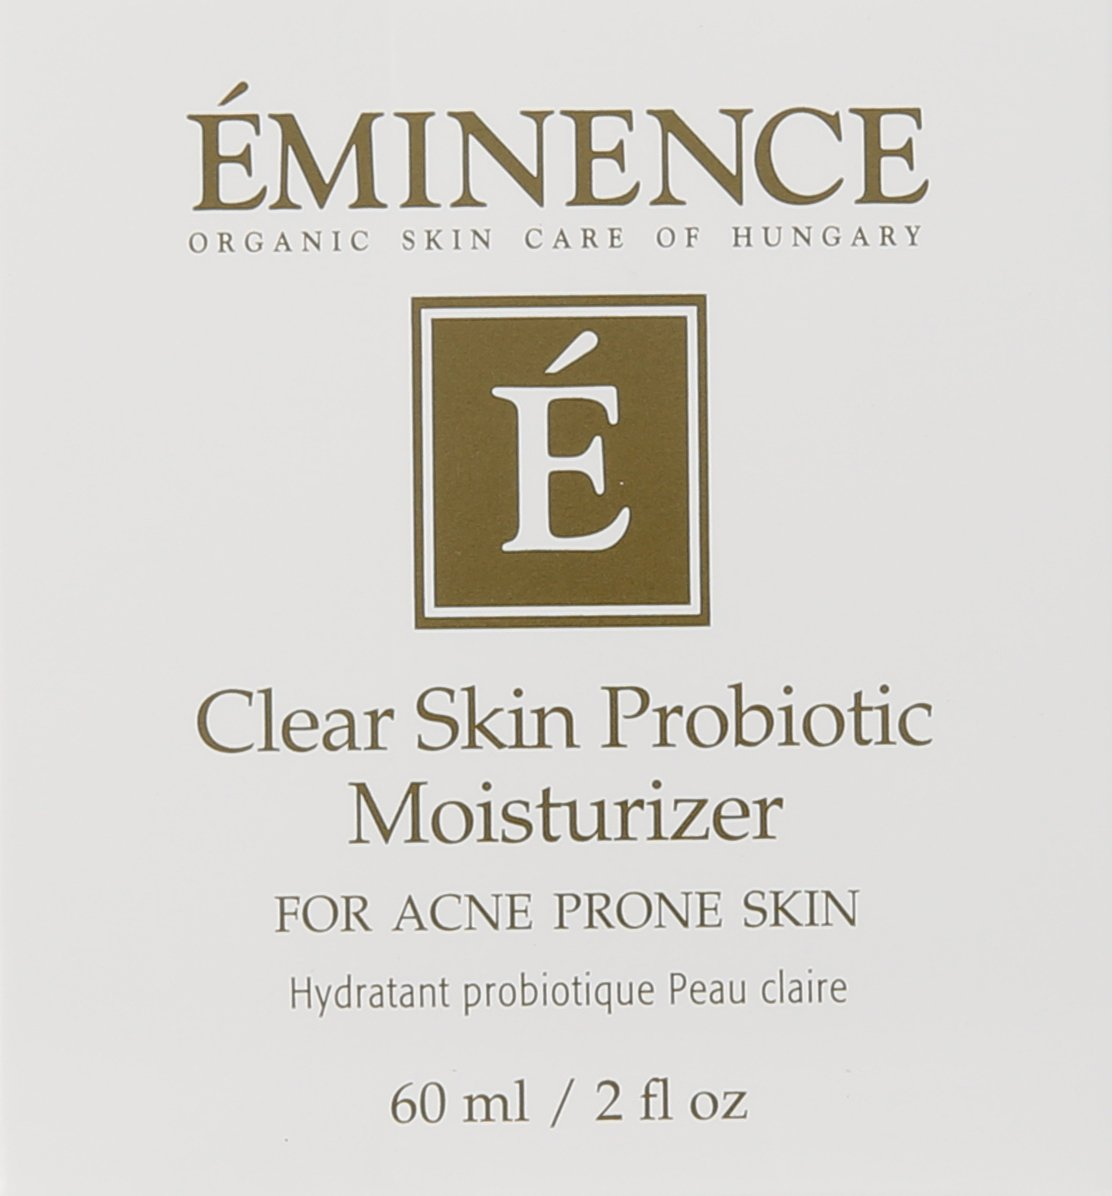 Eminence Clear Skin Probiotic Moisturizer, 2 Ounce by Eminence (Image #3)